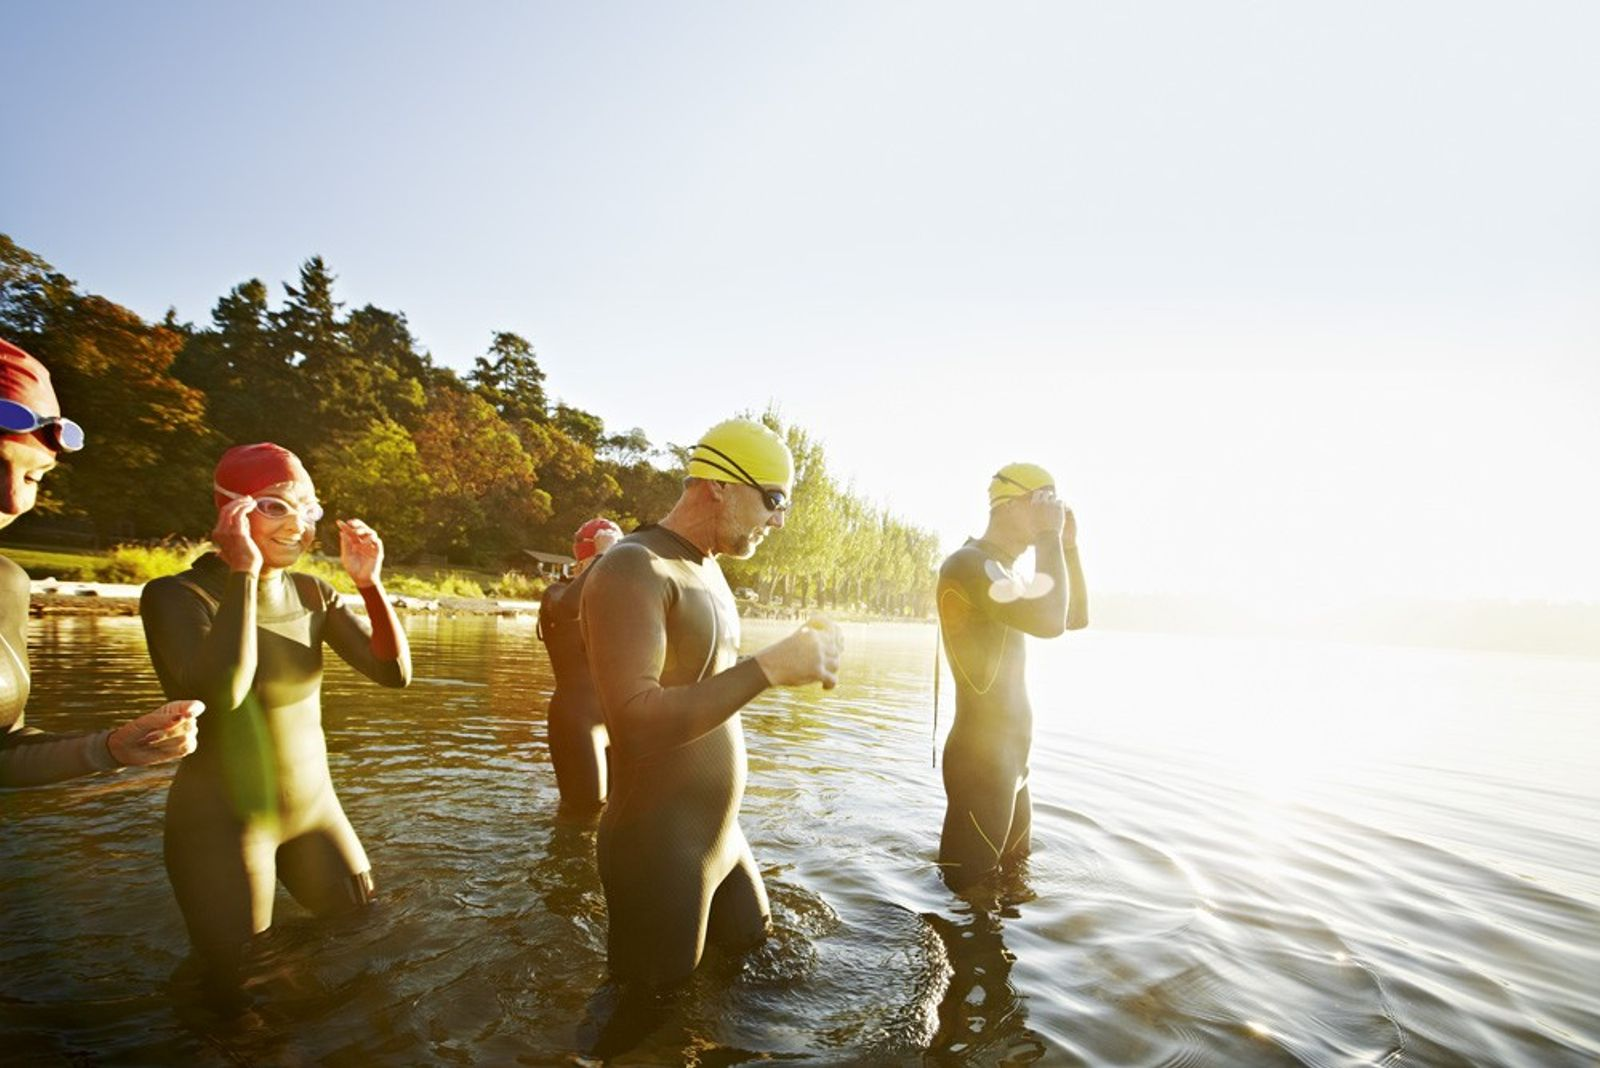 Many are ditching traditional getaways for triathlons to push both mind and body. Would you?